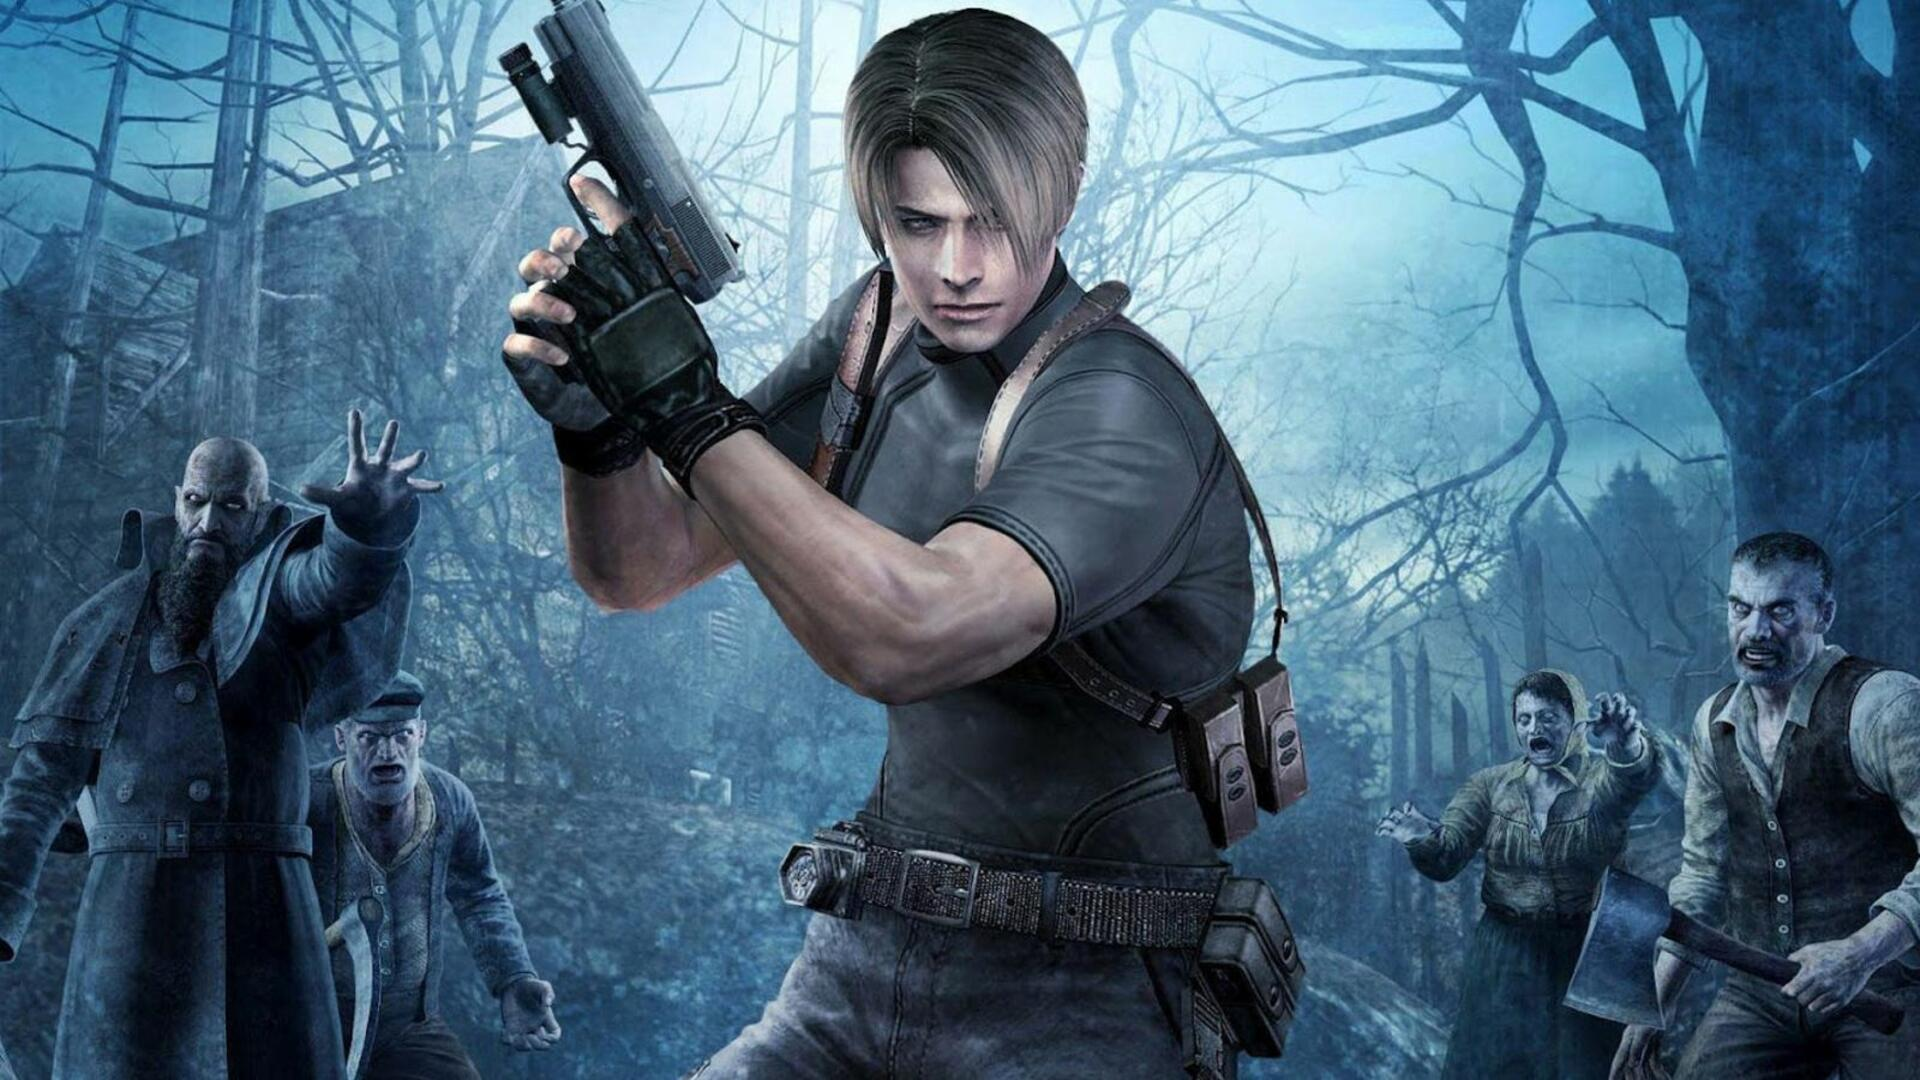 Resident Evil 4 Runs Better In Handheld Mode Than Docked Digital